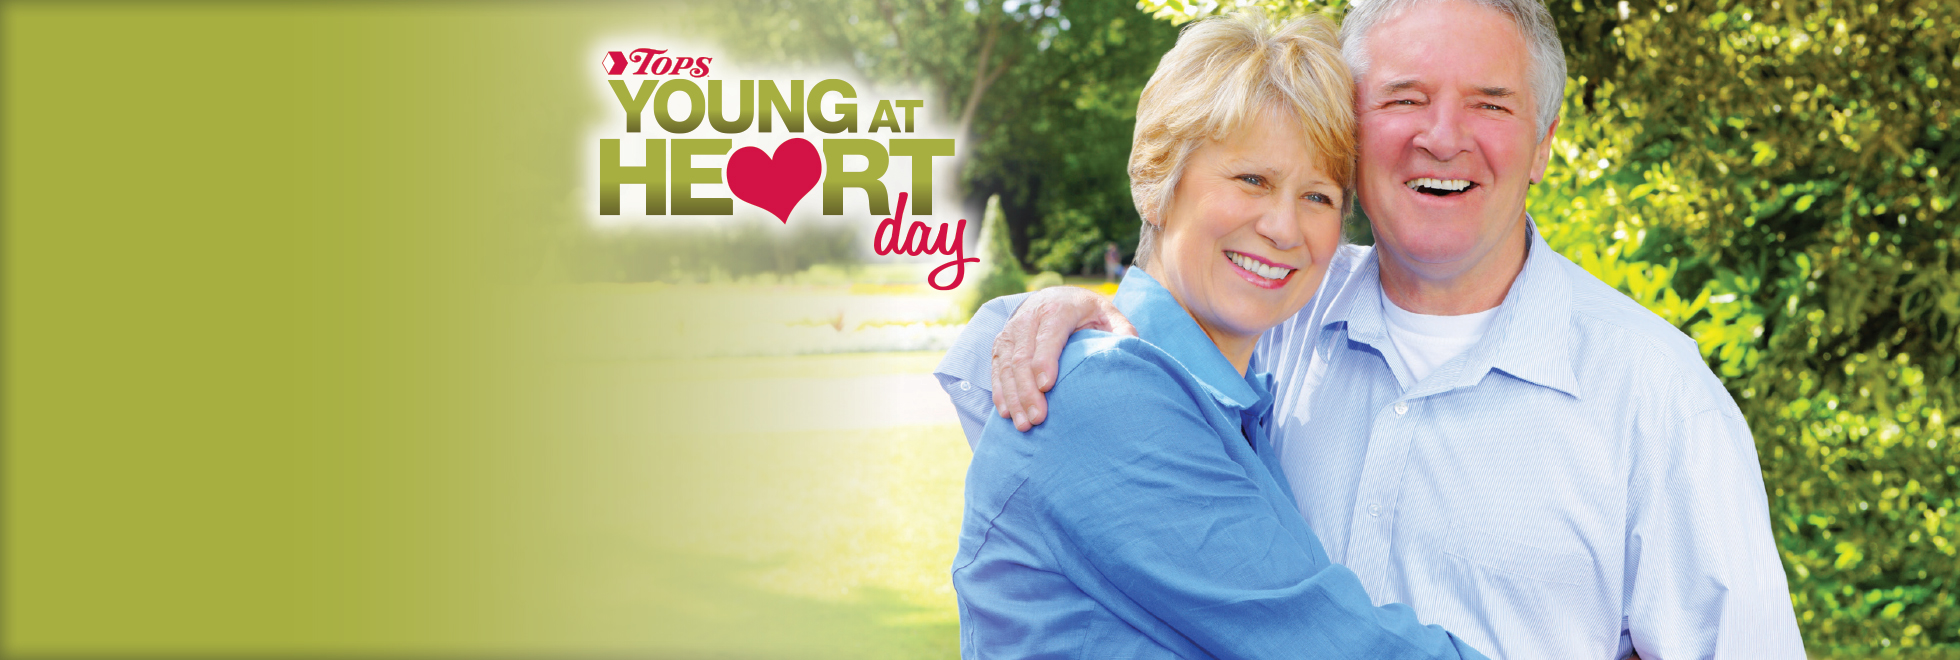 Tuesday, May 3rd is Young at Heart Day at TOPS